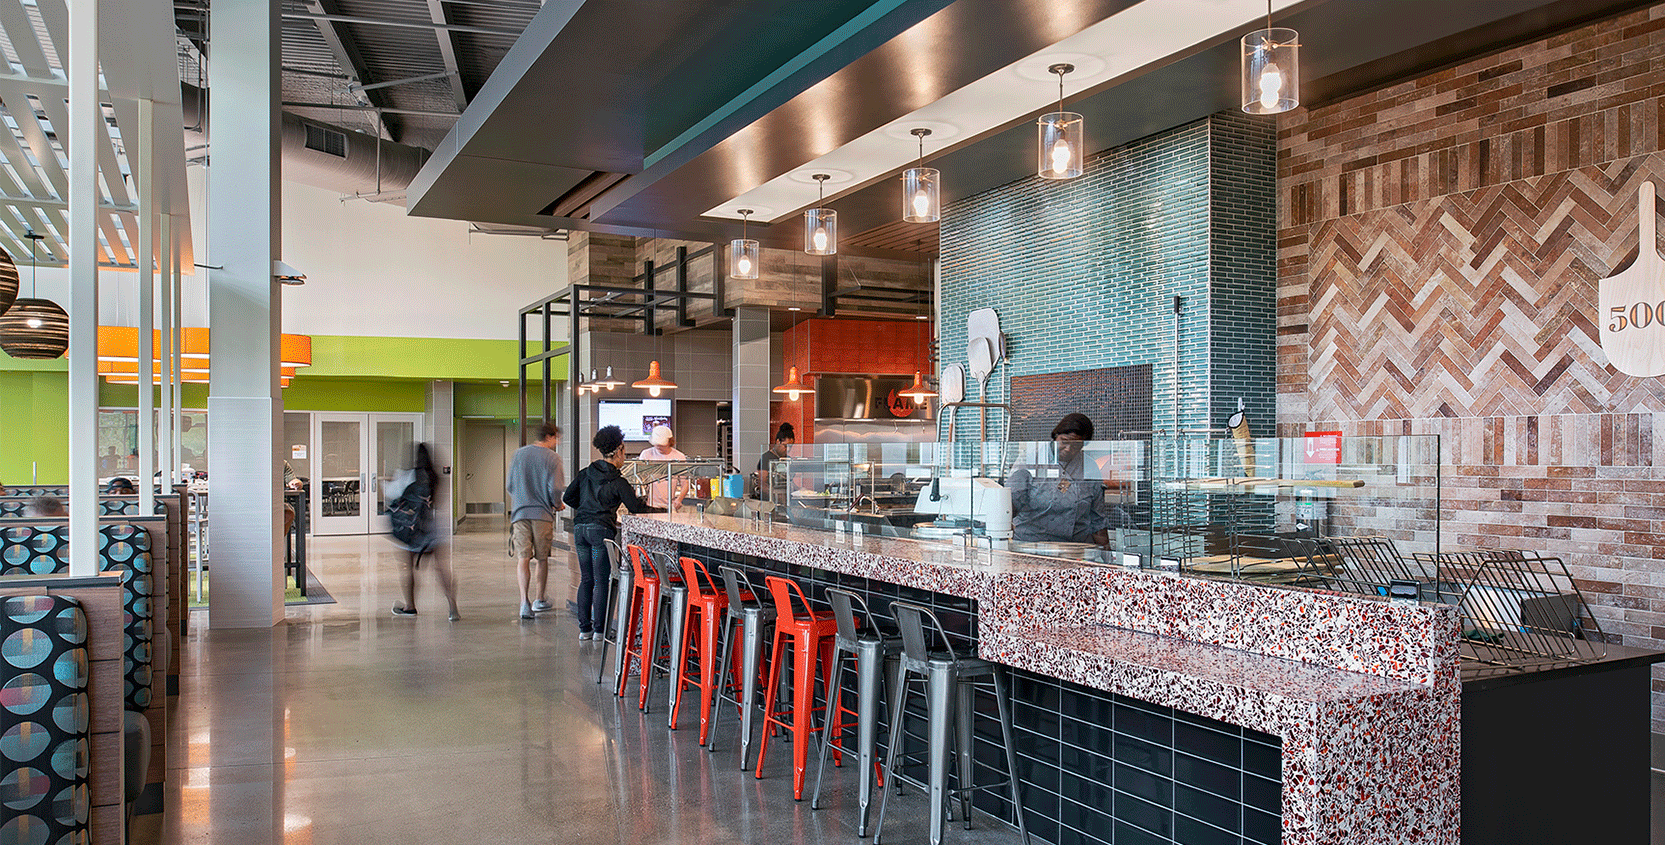 OU-Residence-Hall-Cafeteria-2-1665x845